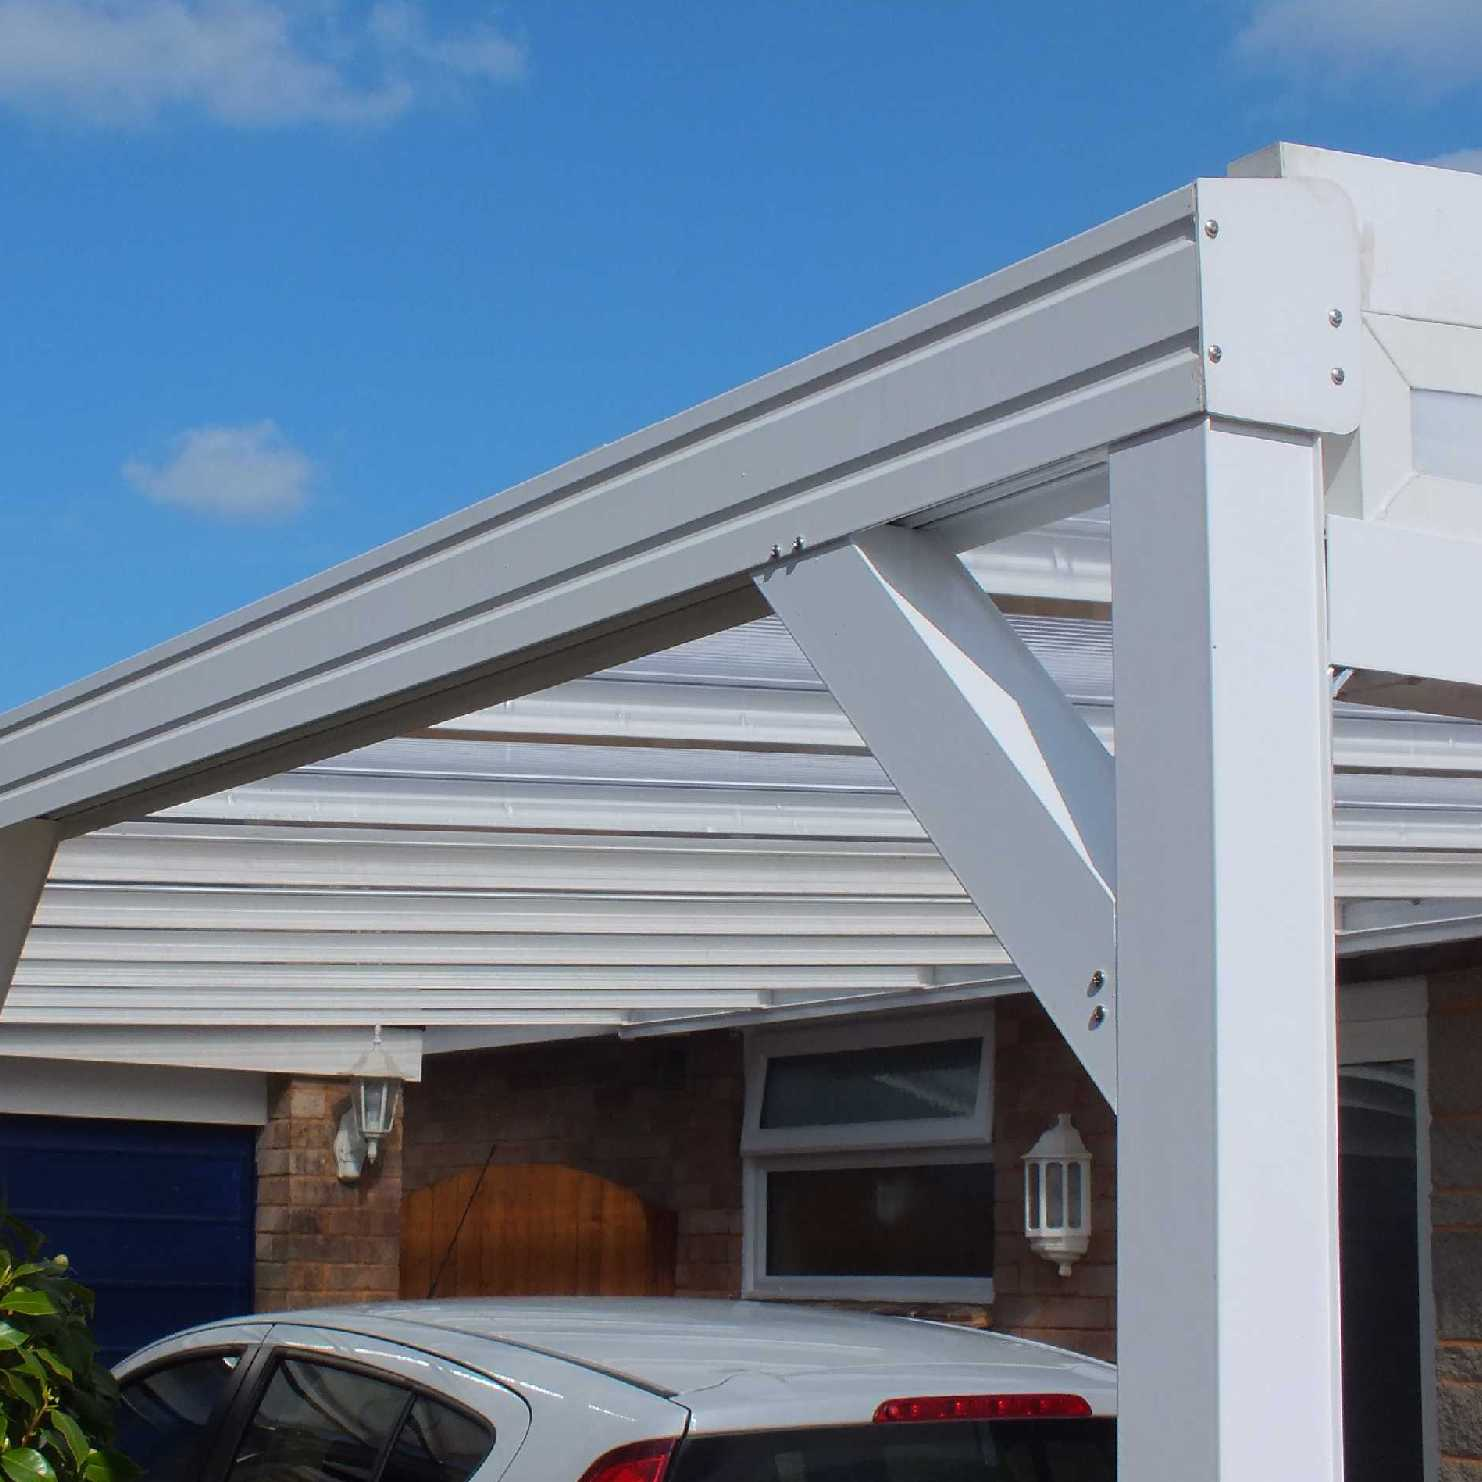 Buy Omega Smart White Lean-To Canopy with 16mm Polycarbonate Glazing - 6.0m (W) x 3.0m (P), (3) Supporting Posts online today